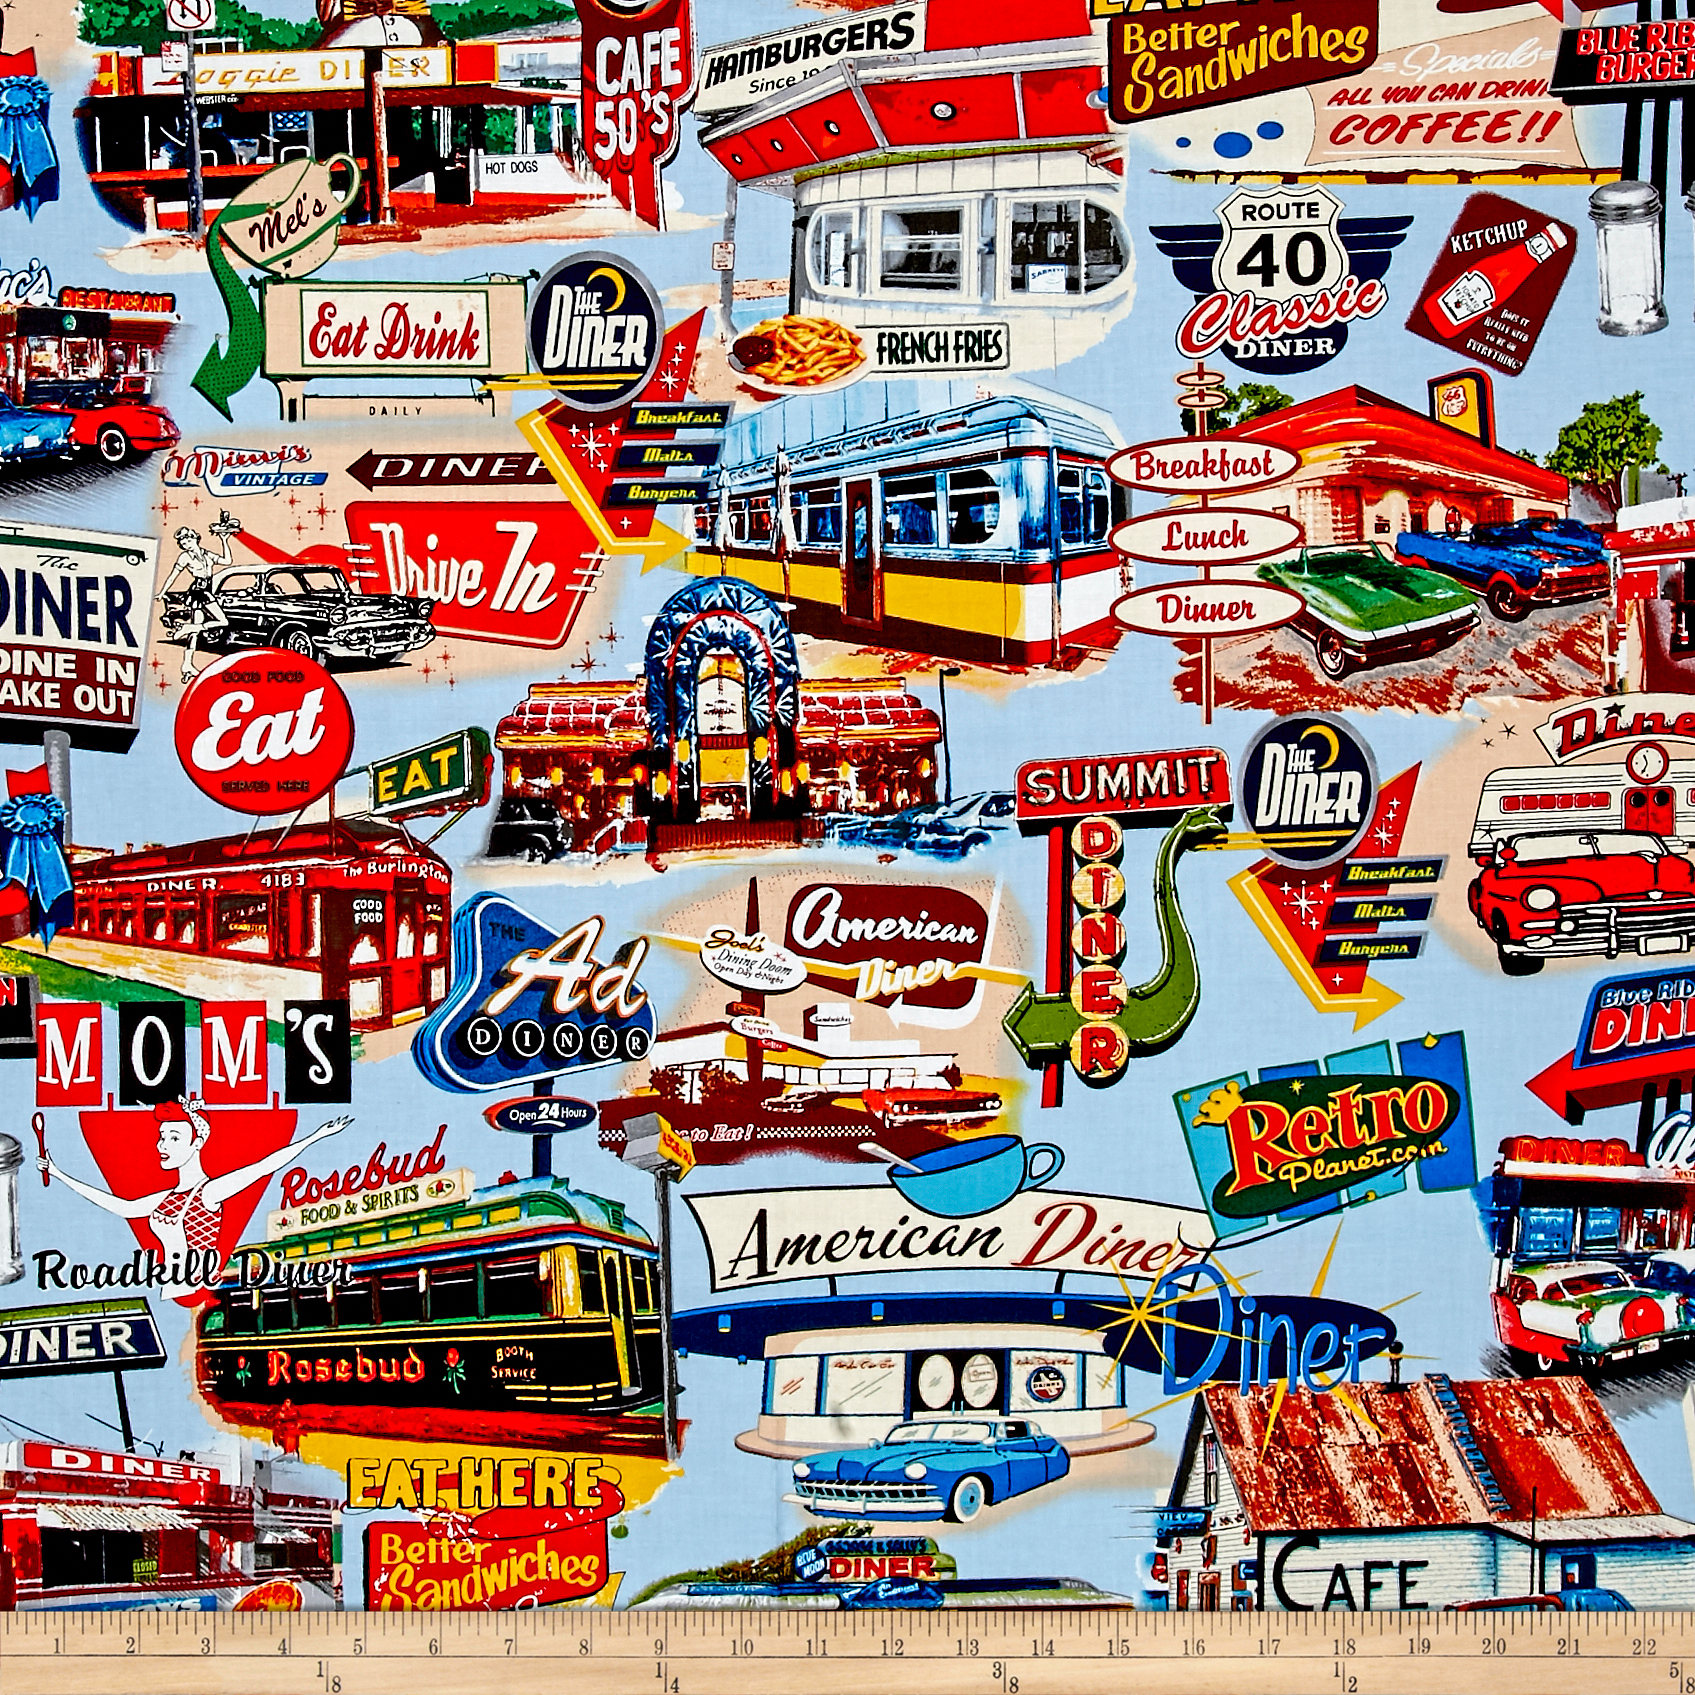 Open 24 Hours Diners & Drive-Ins Allover Toss Fabric by Exclusively Quilters in USA